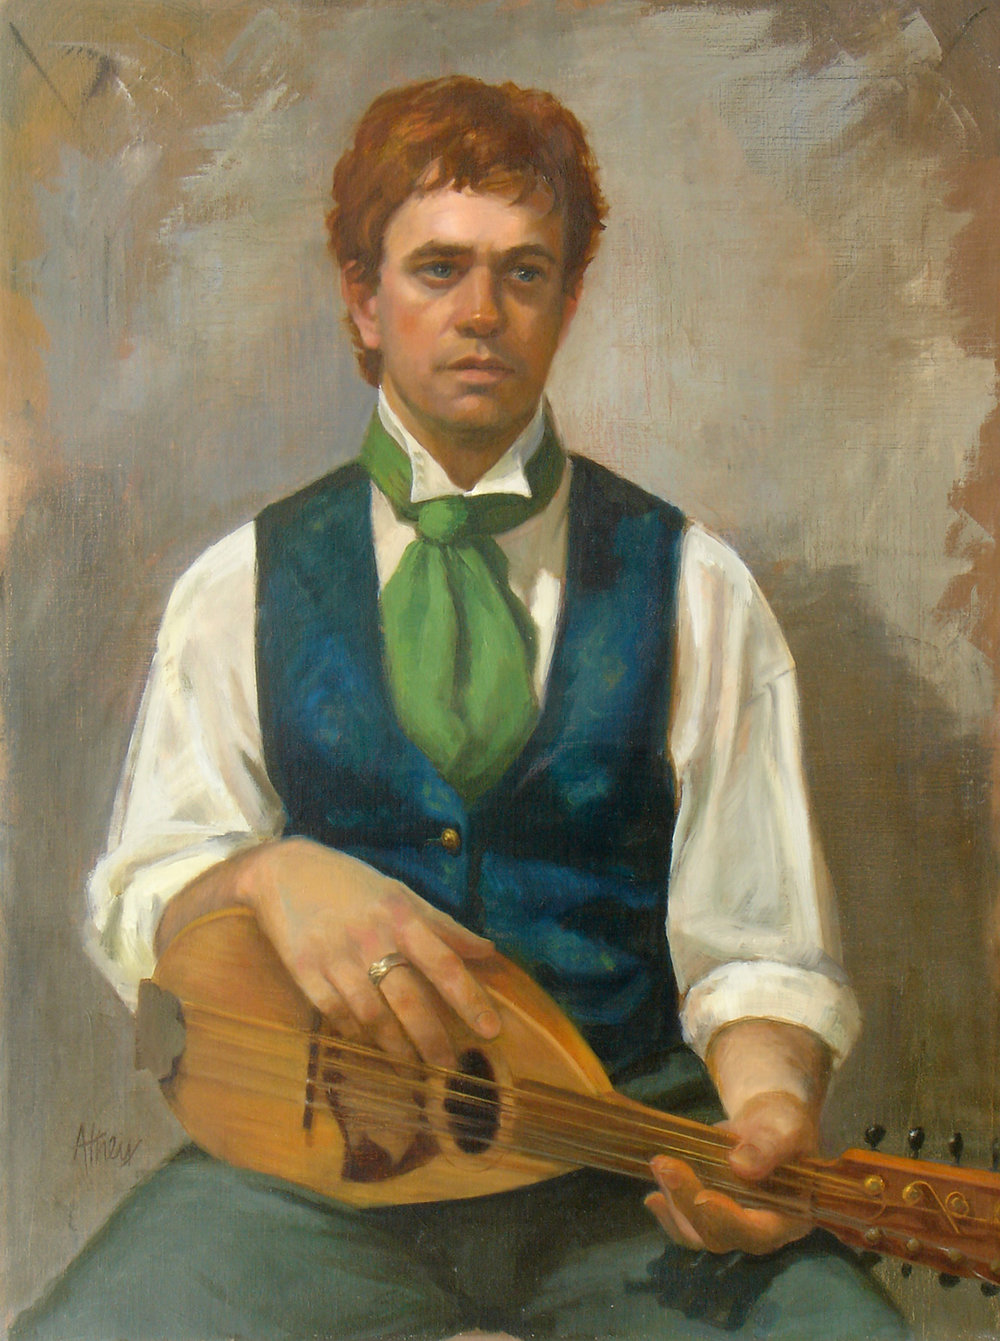 """Man with Mandolin"" 2003, 24x19"", Oil on Linen"